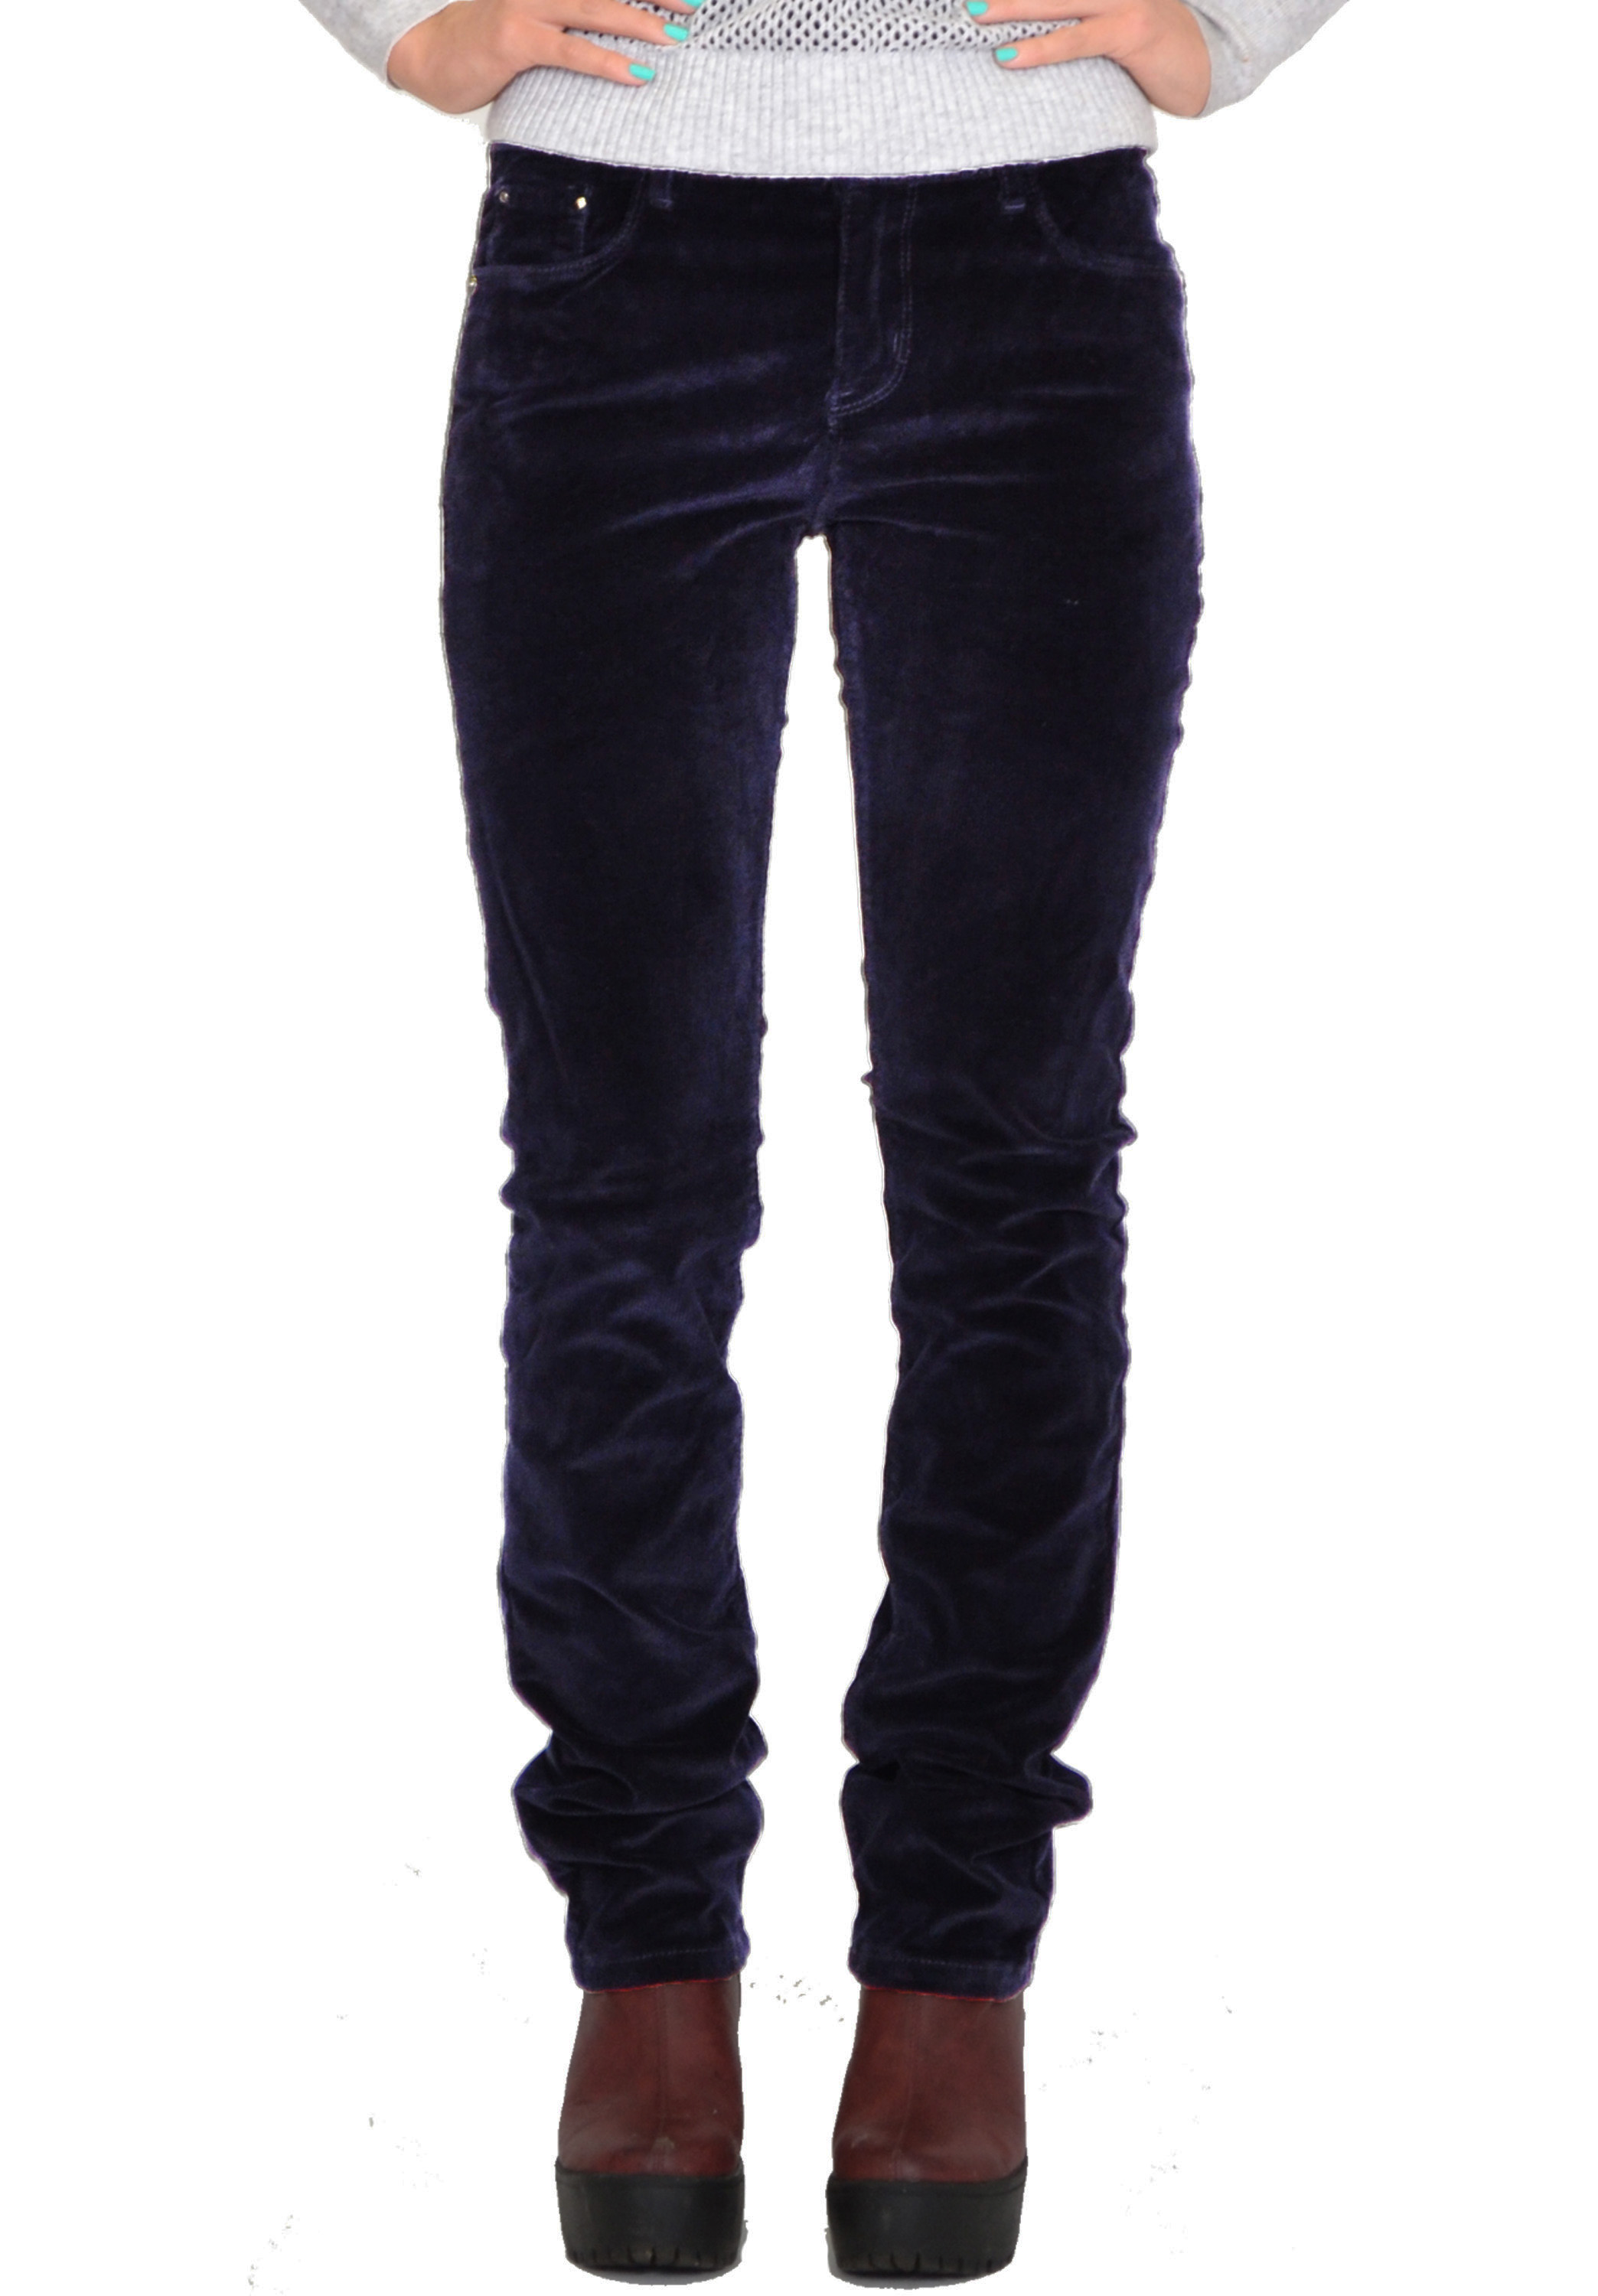 Find navy blue corduroy pants from a vast selection of